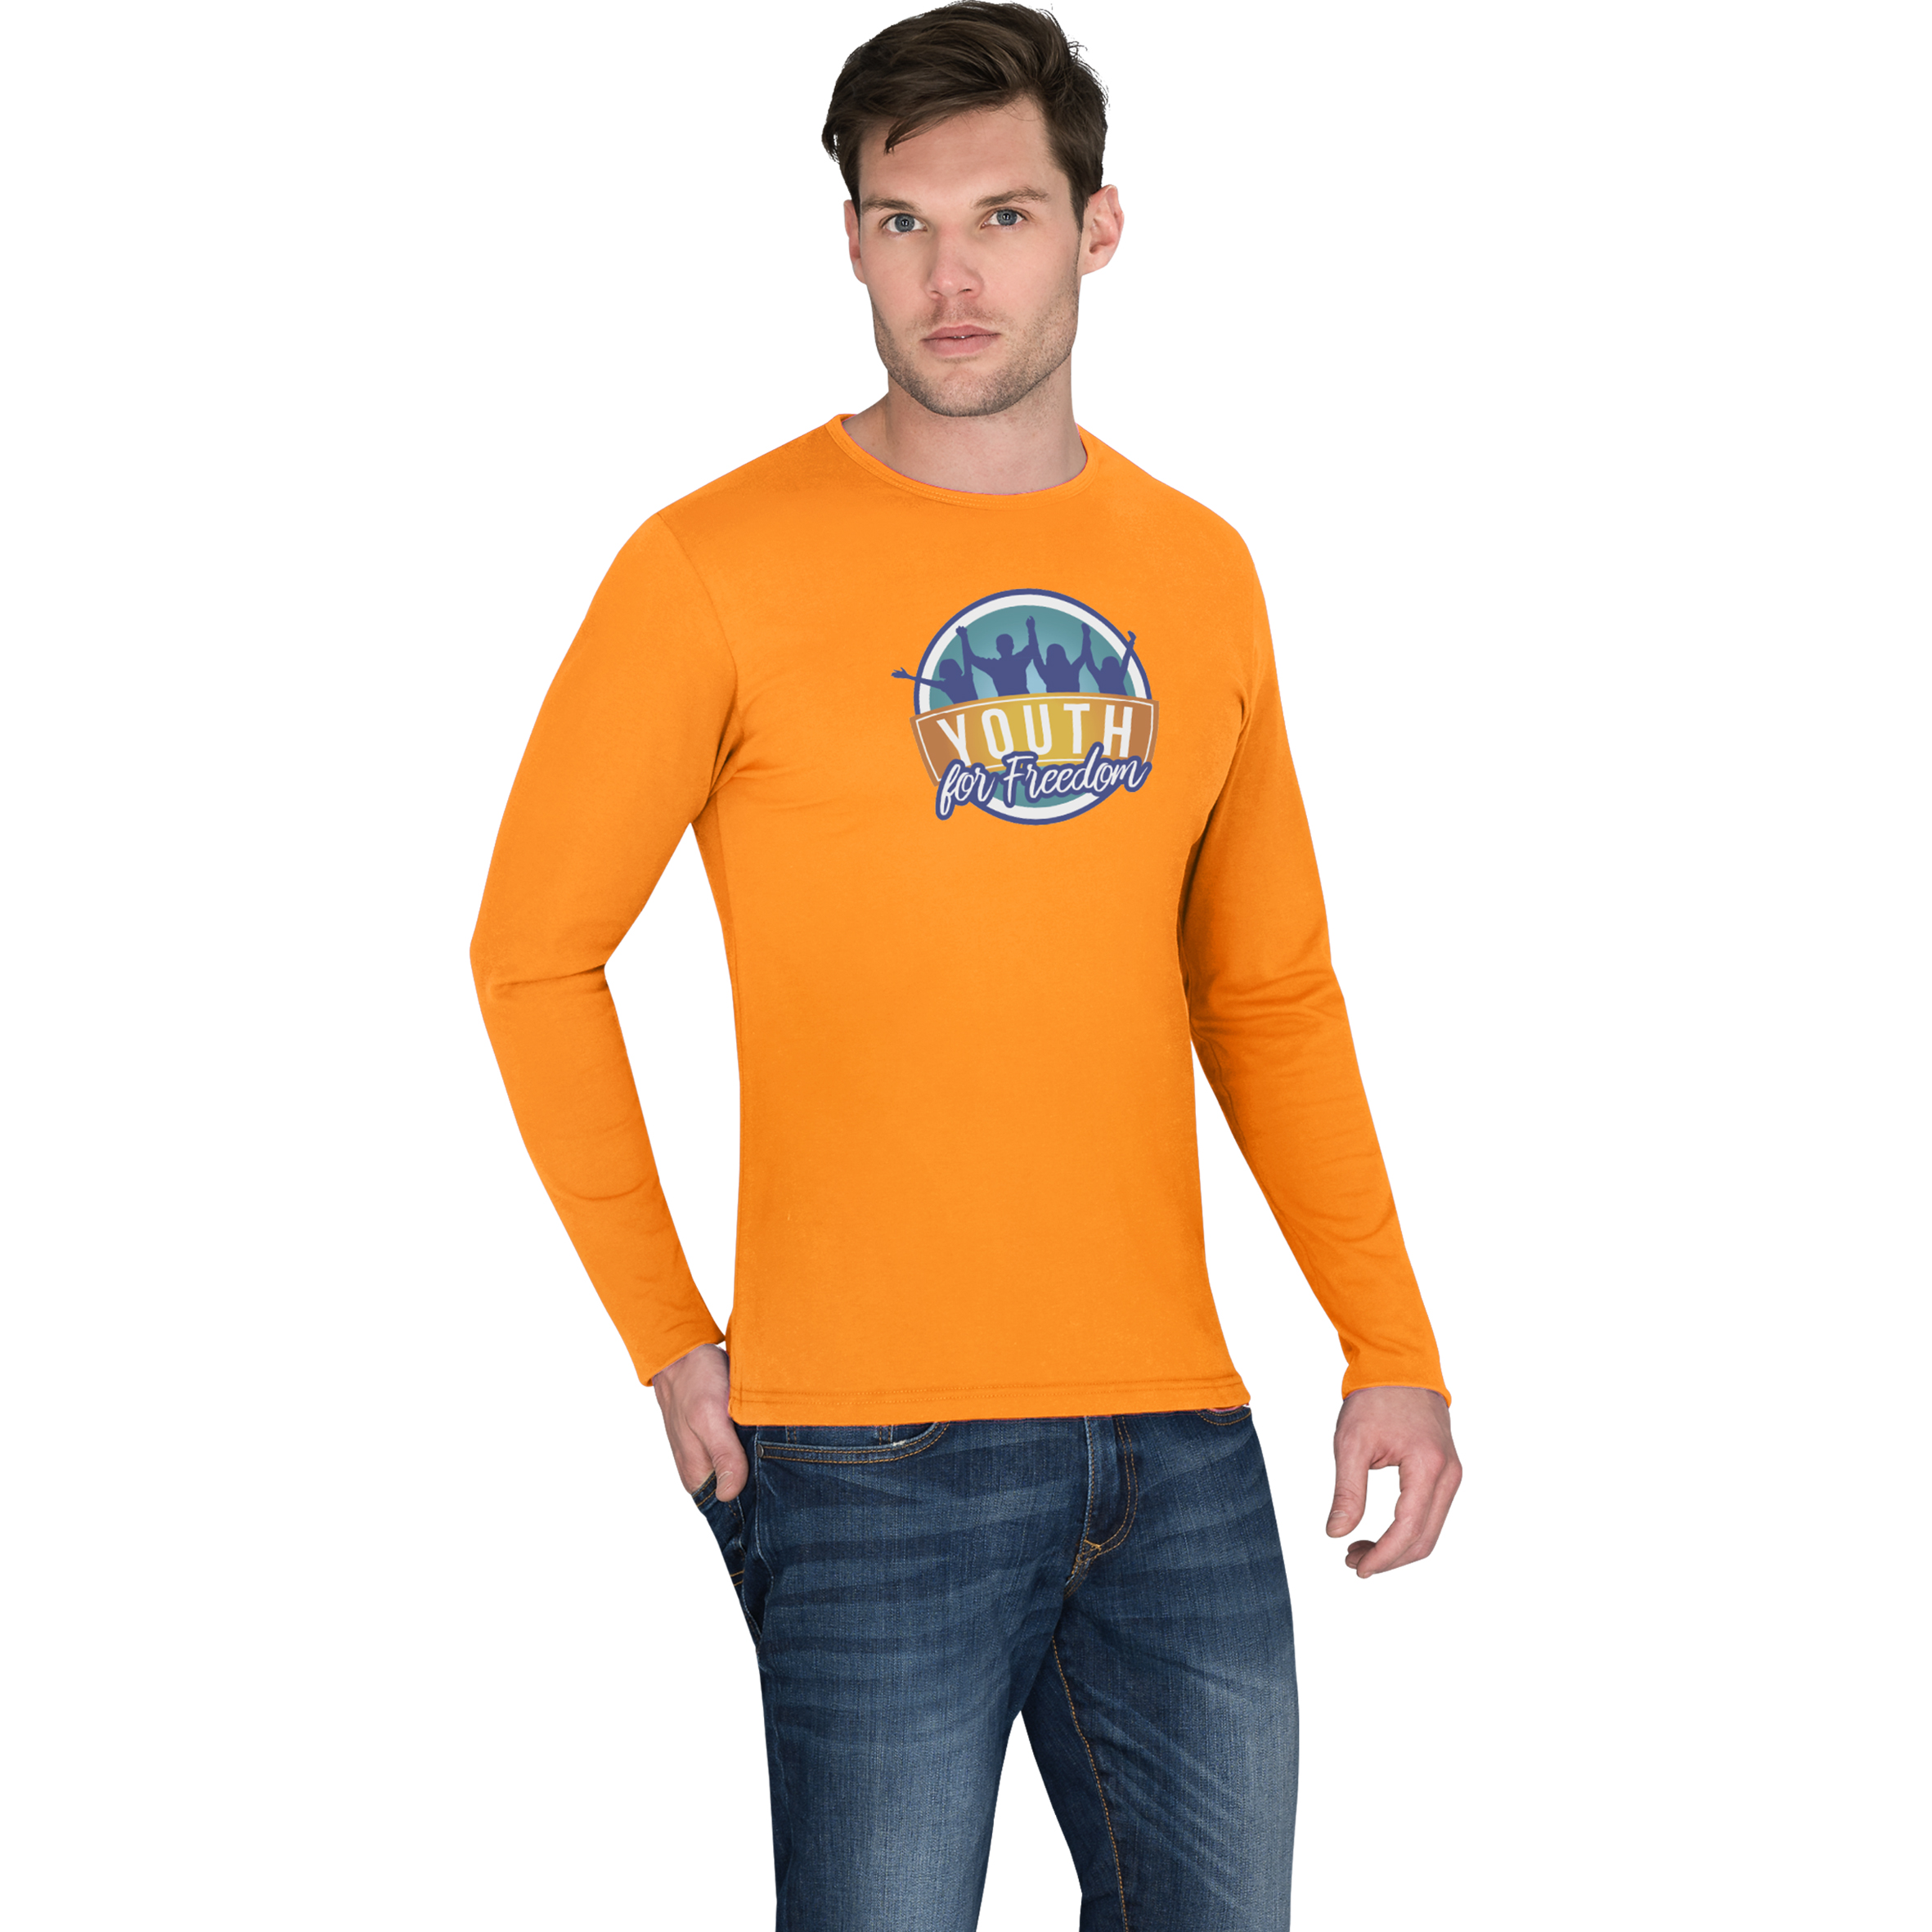 Mens Long Sleeve Portland T-Shirt